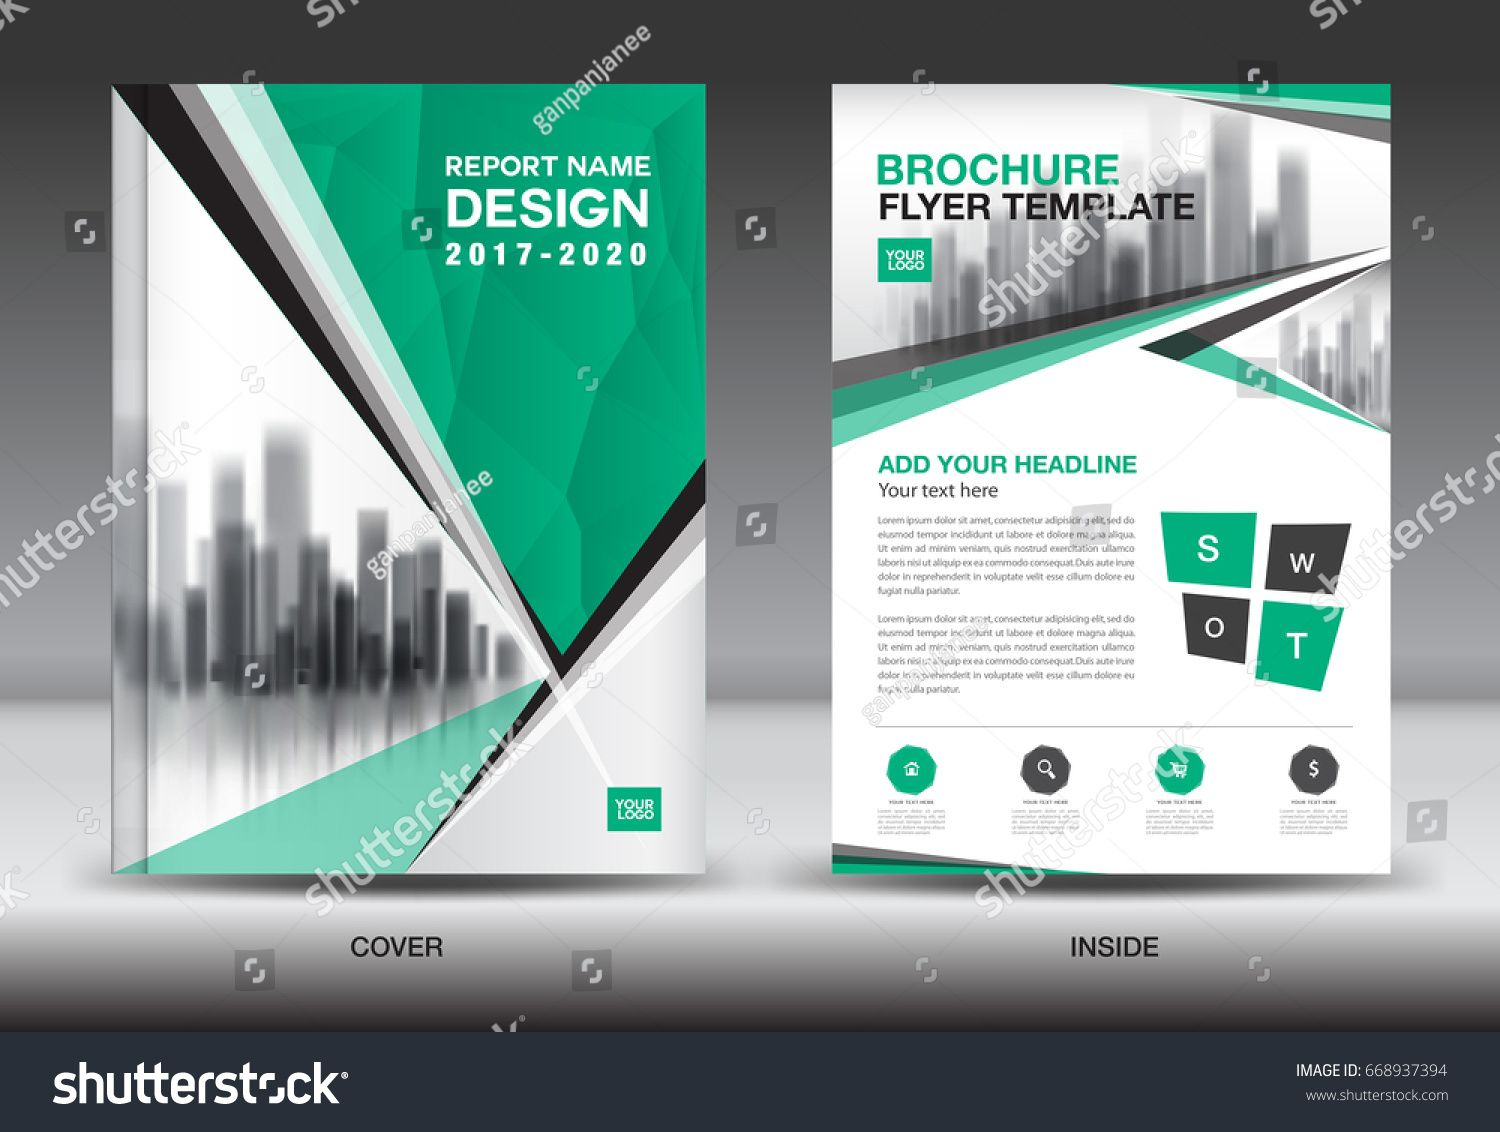 Annual report brochure flyer template, Green cover design